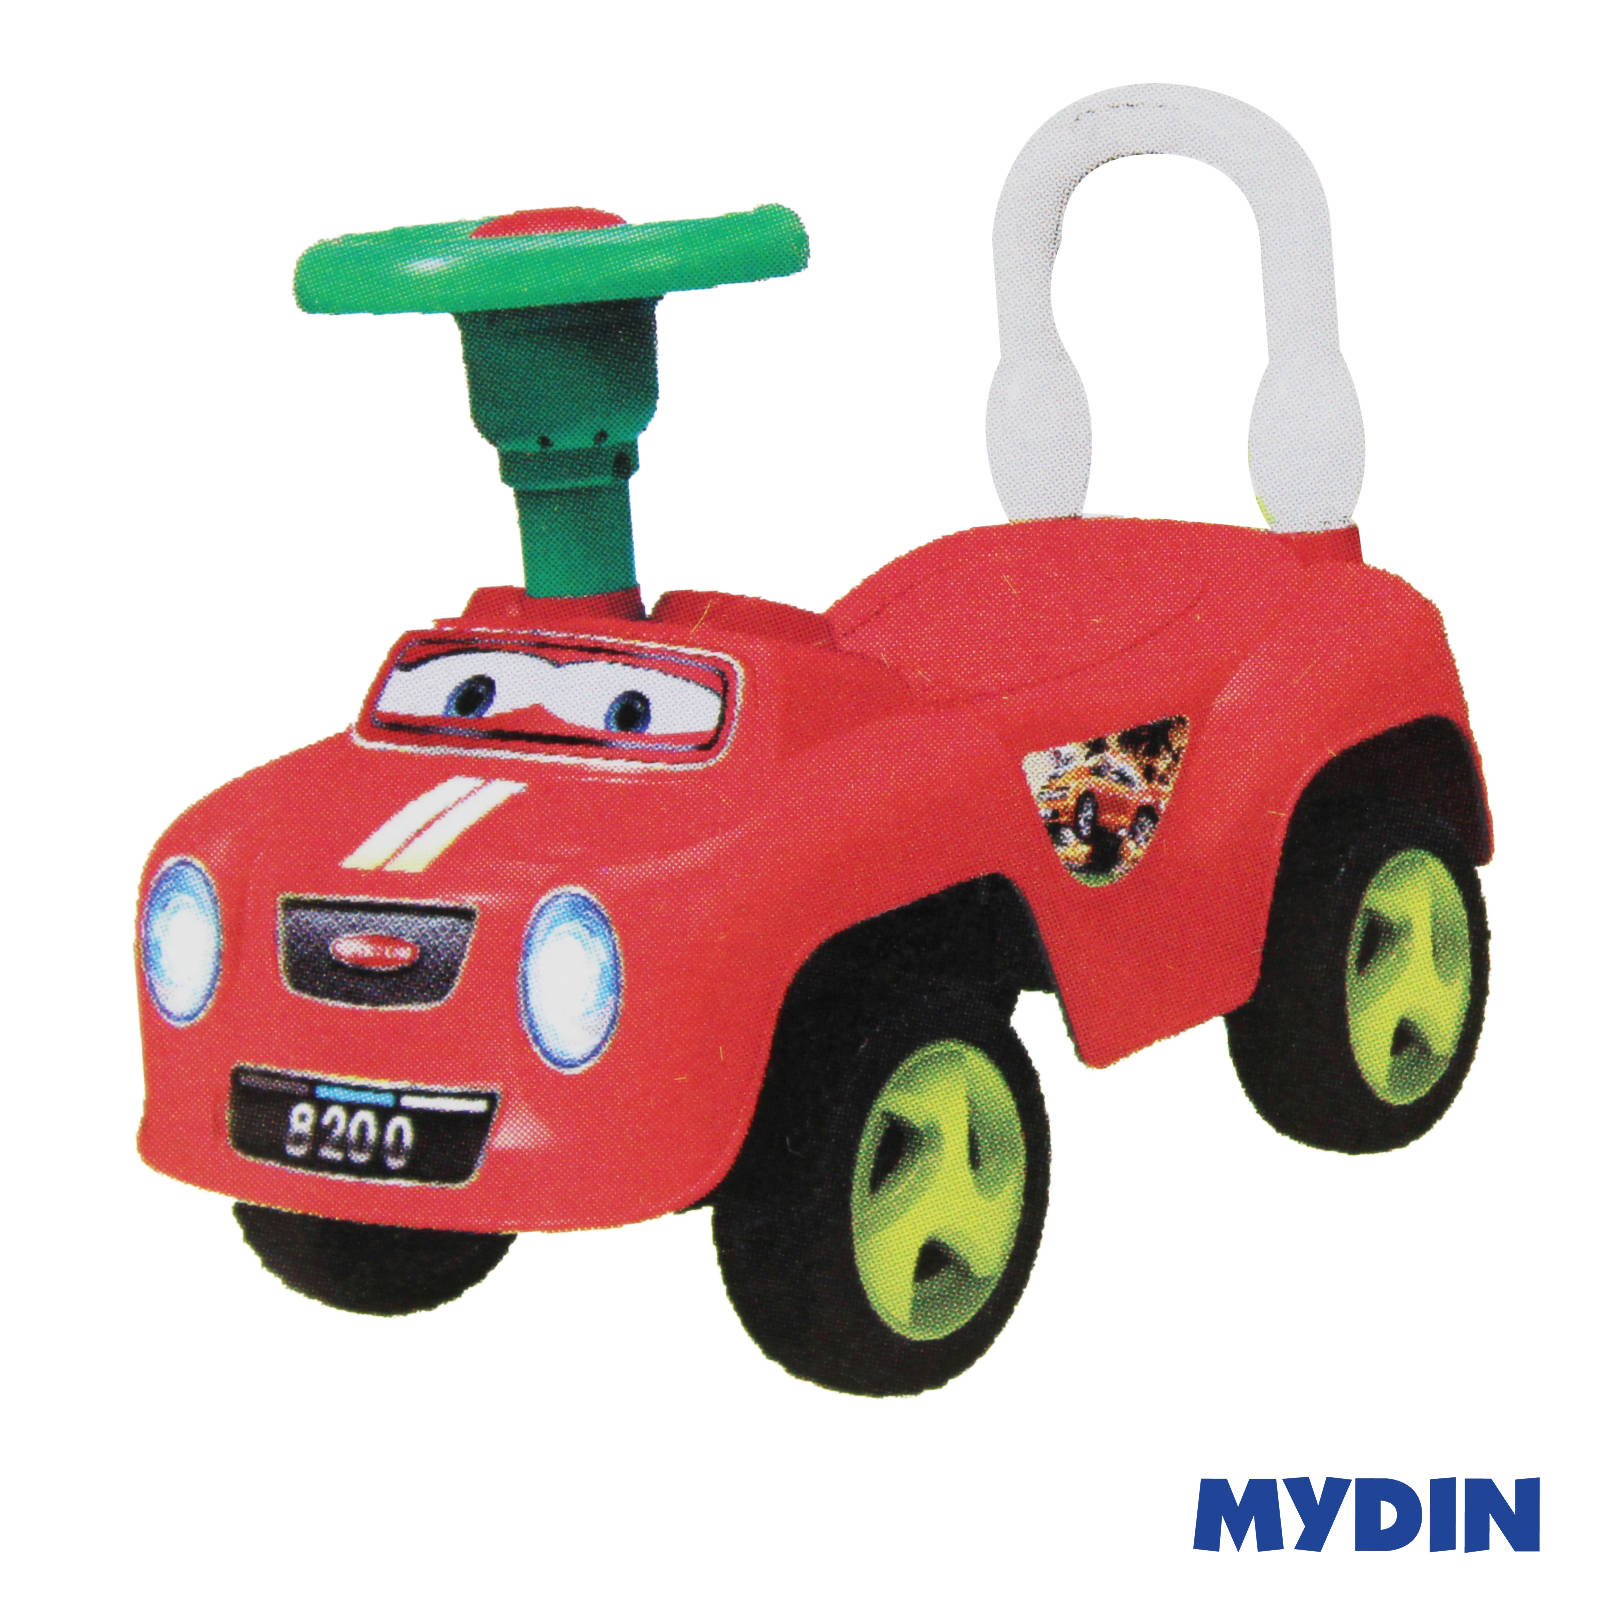 Cartoon Toy Push Car SP8200 (3years+)